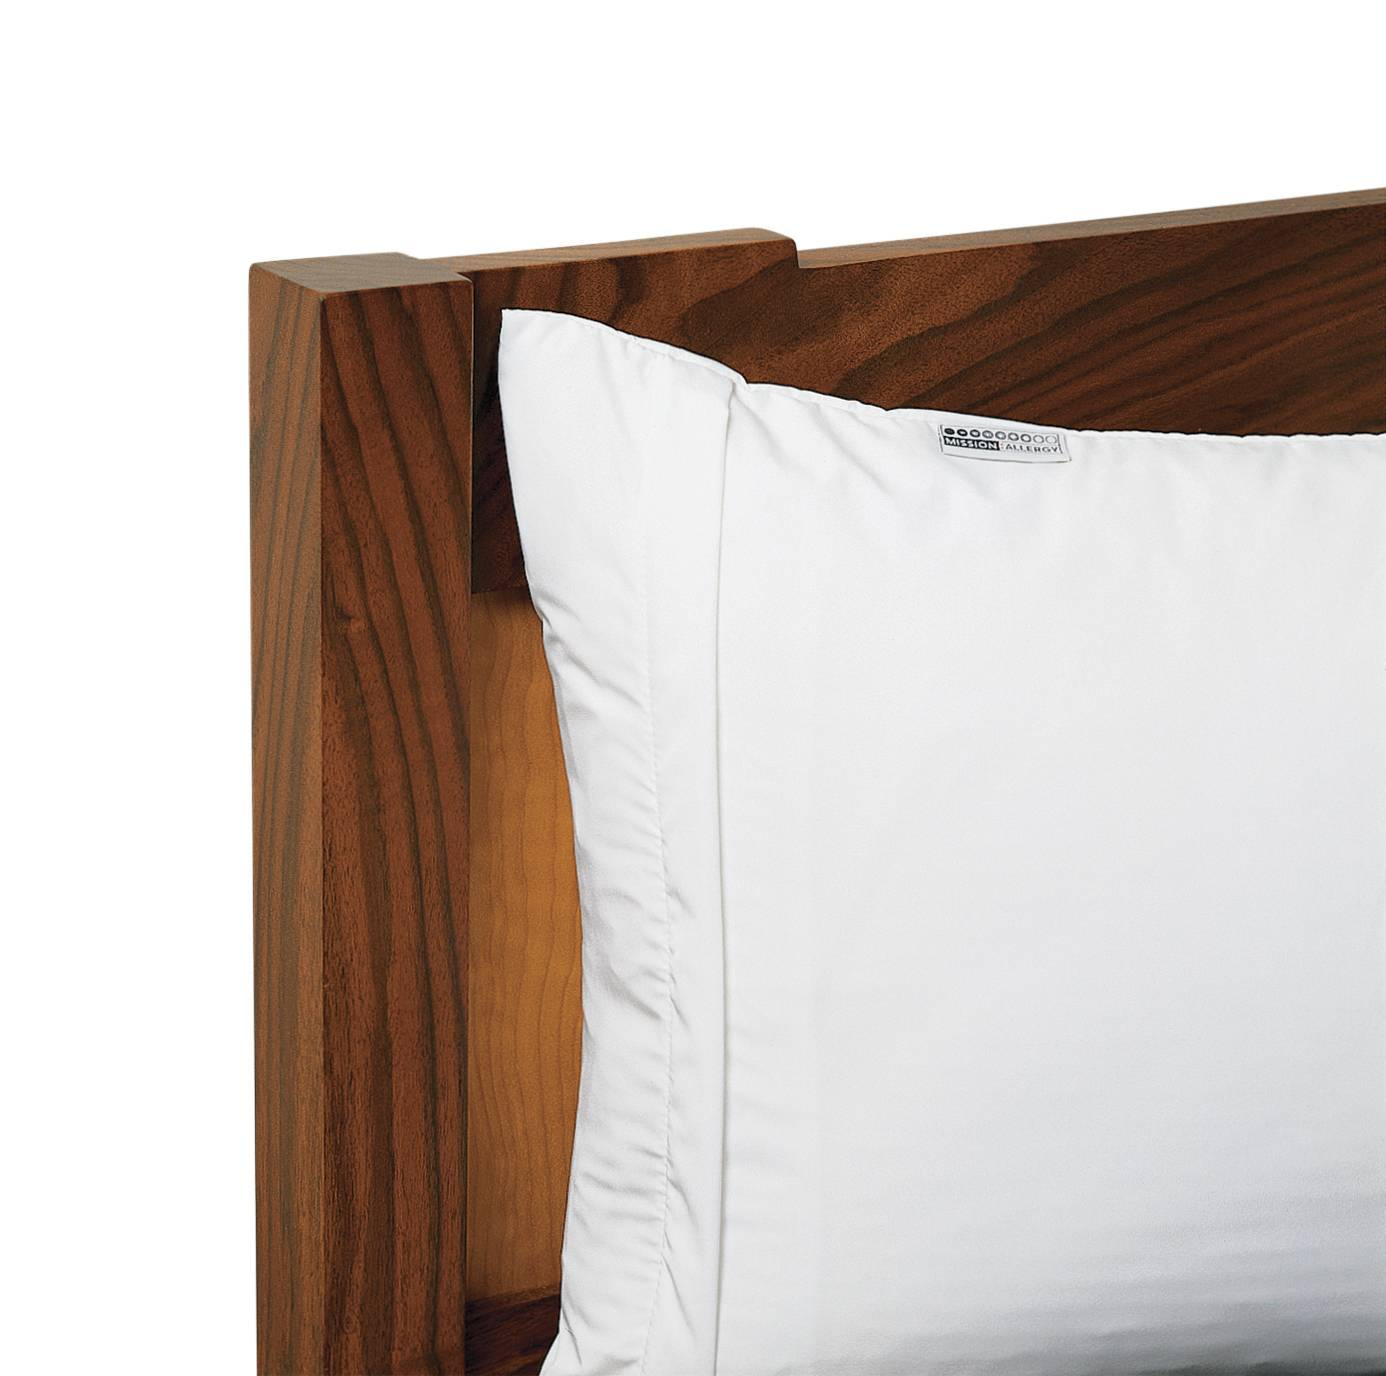 Lessen your allergies by encasing your pillow in an allergen-proof cover.